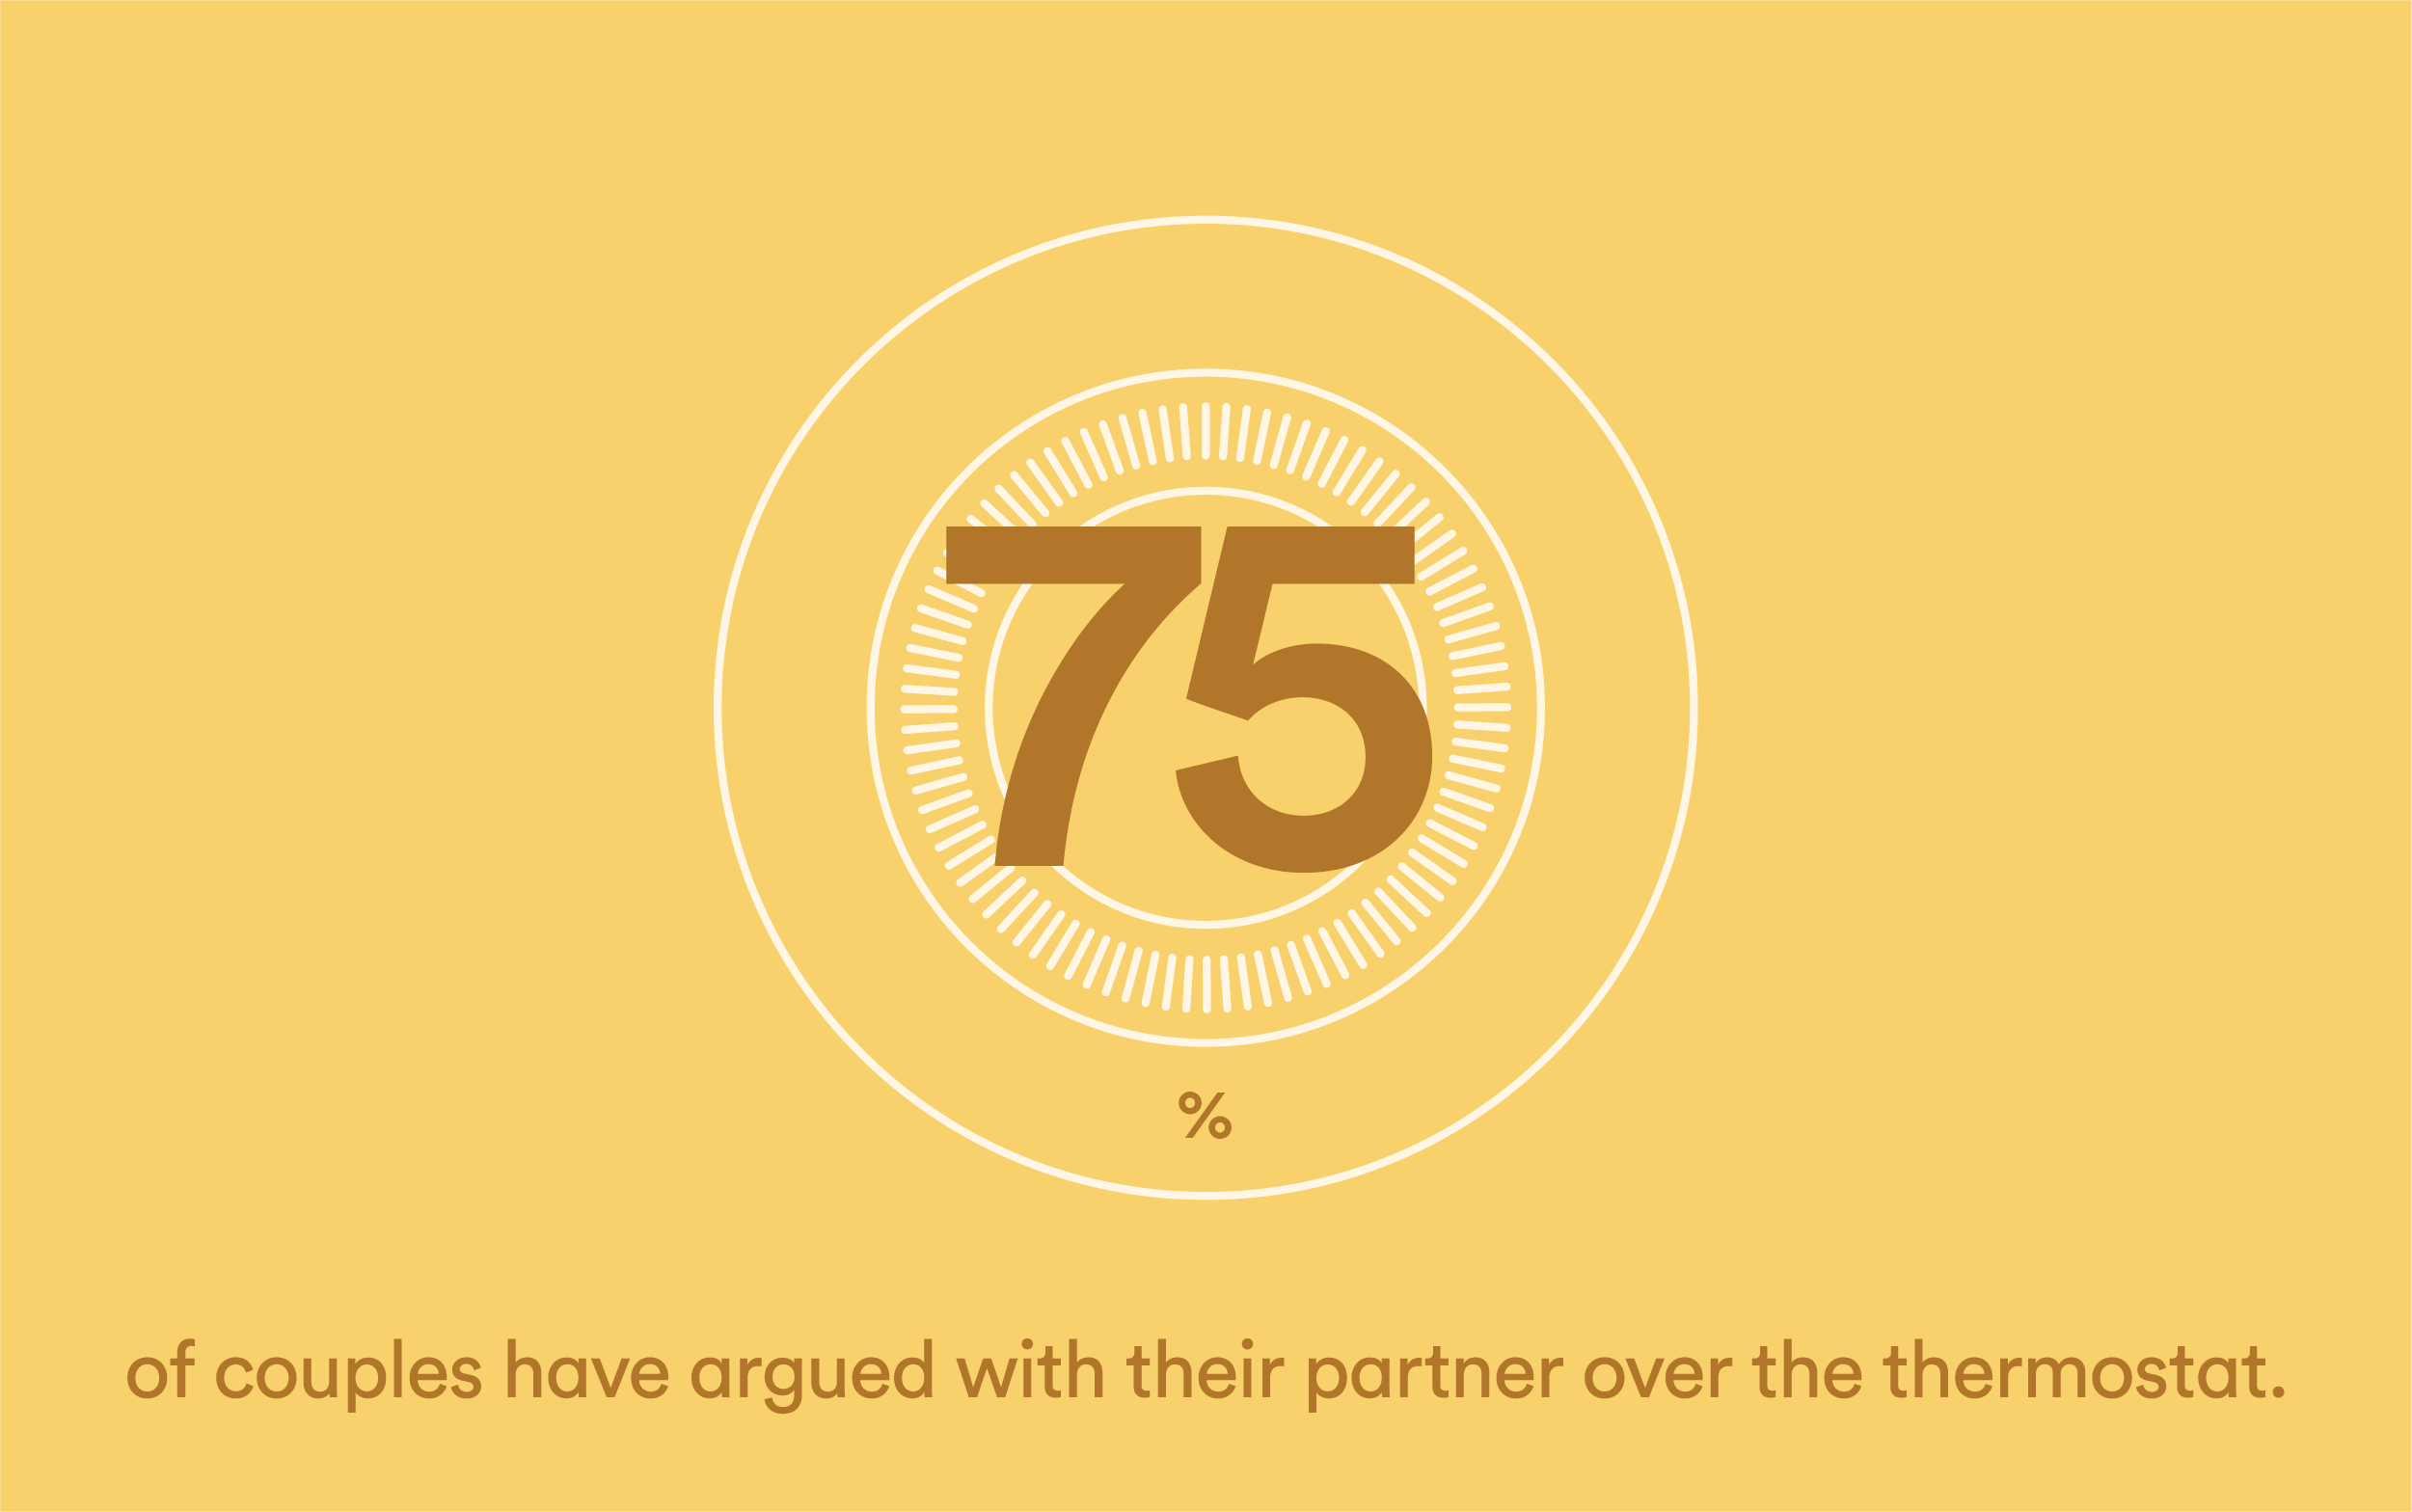 75% Of Couples Have Argued With Their Partner Over Their Thermostat